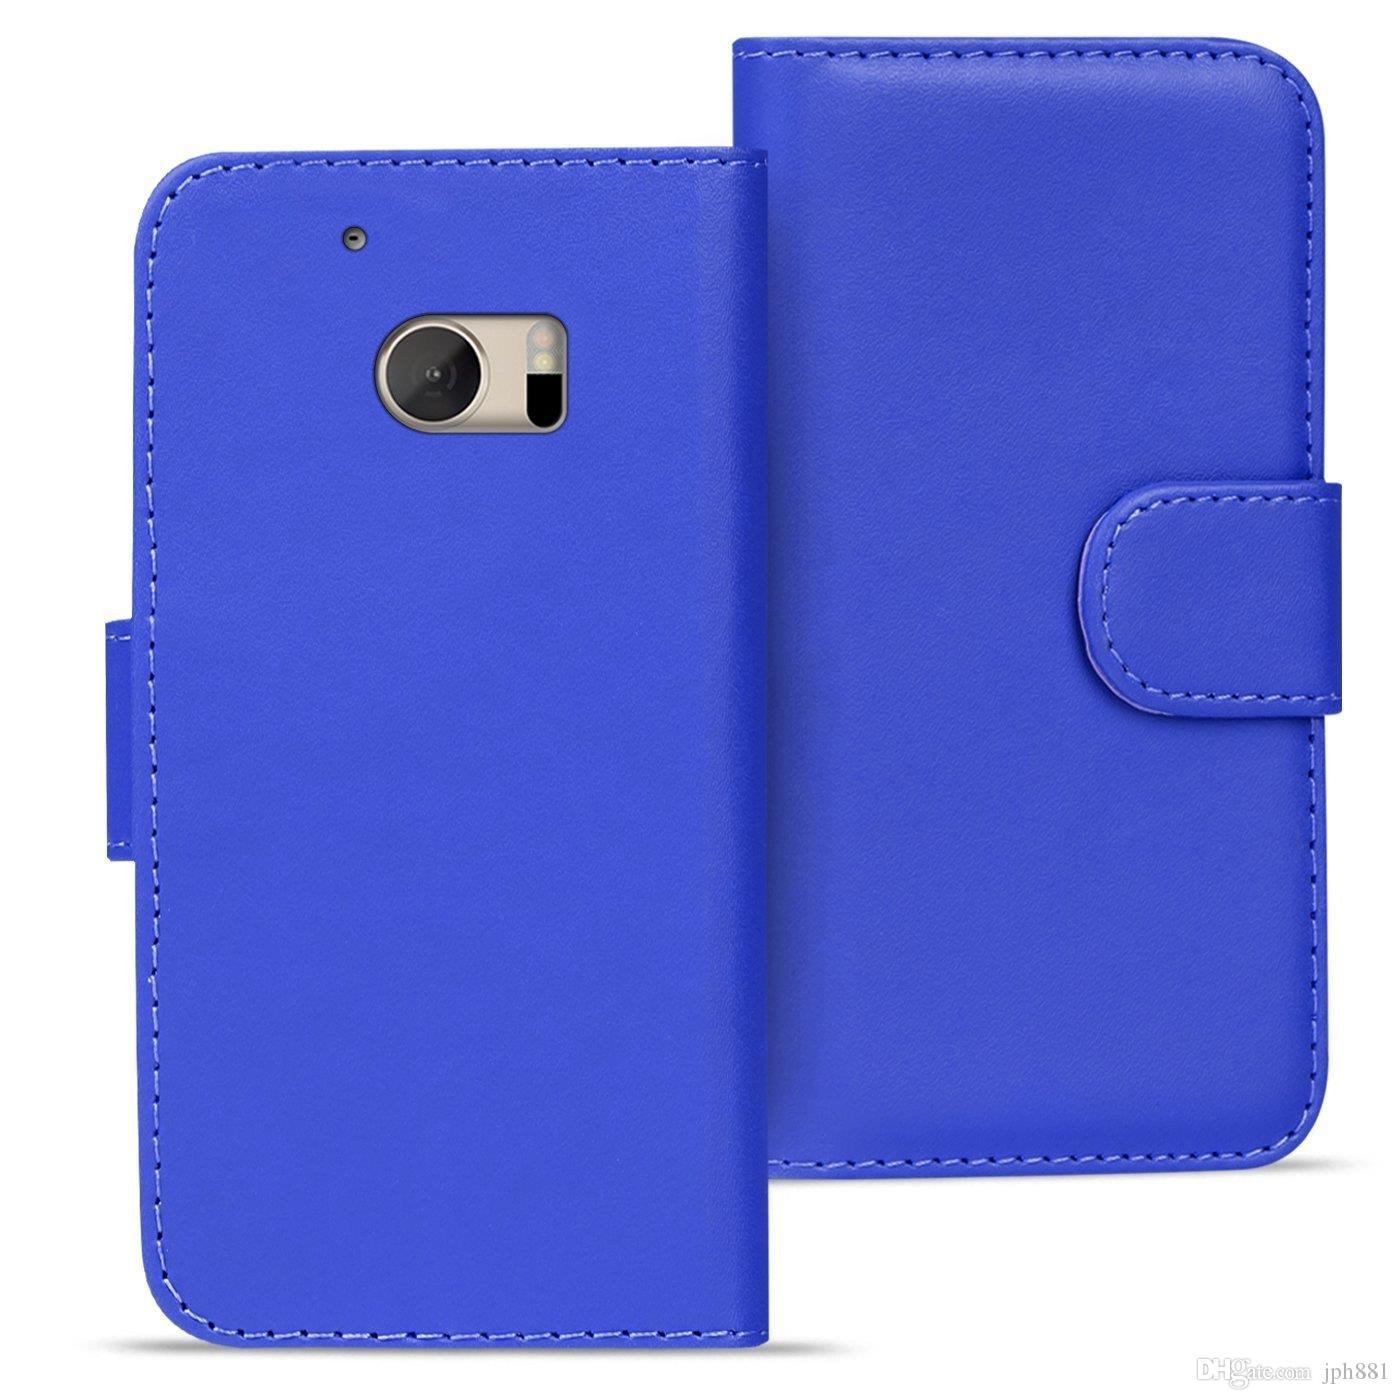 Flip Wallet Case For HTC 10 10EVO Credit Card Holder Stand Cover for HTC Desire 626G,One A9,M8 M9,Desire Lifestyle